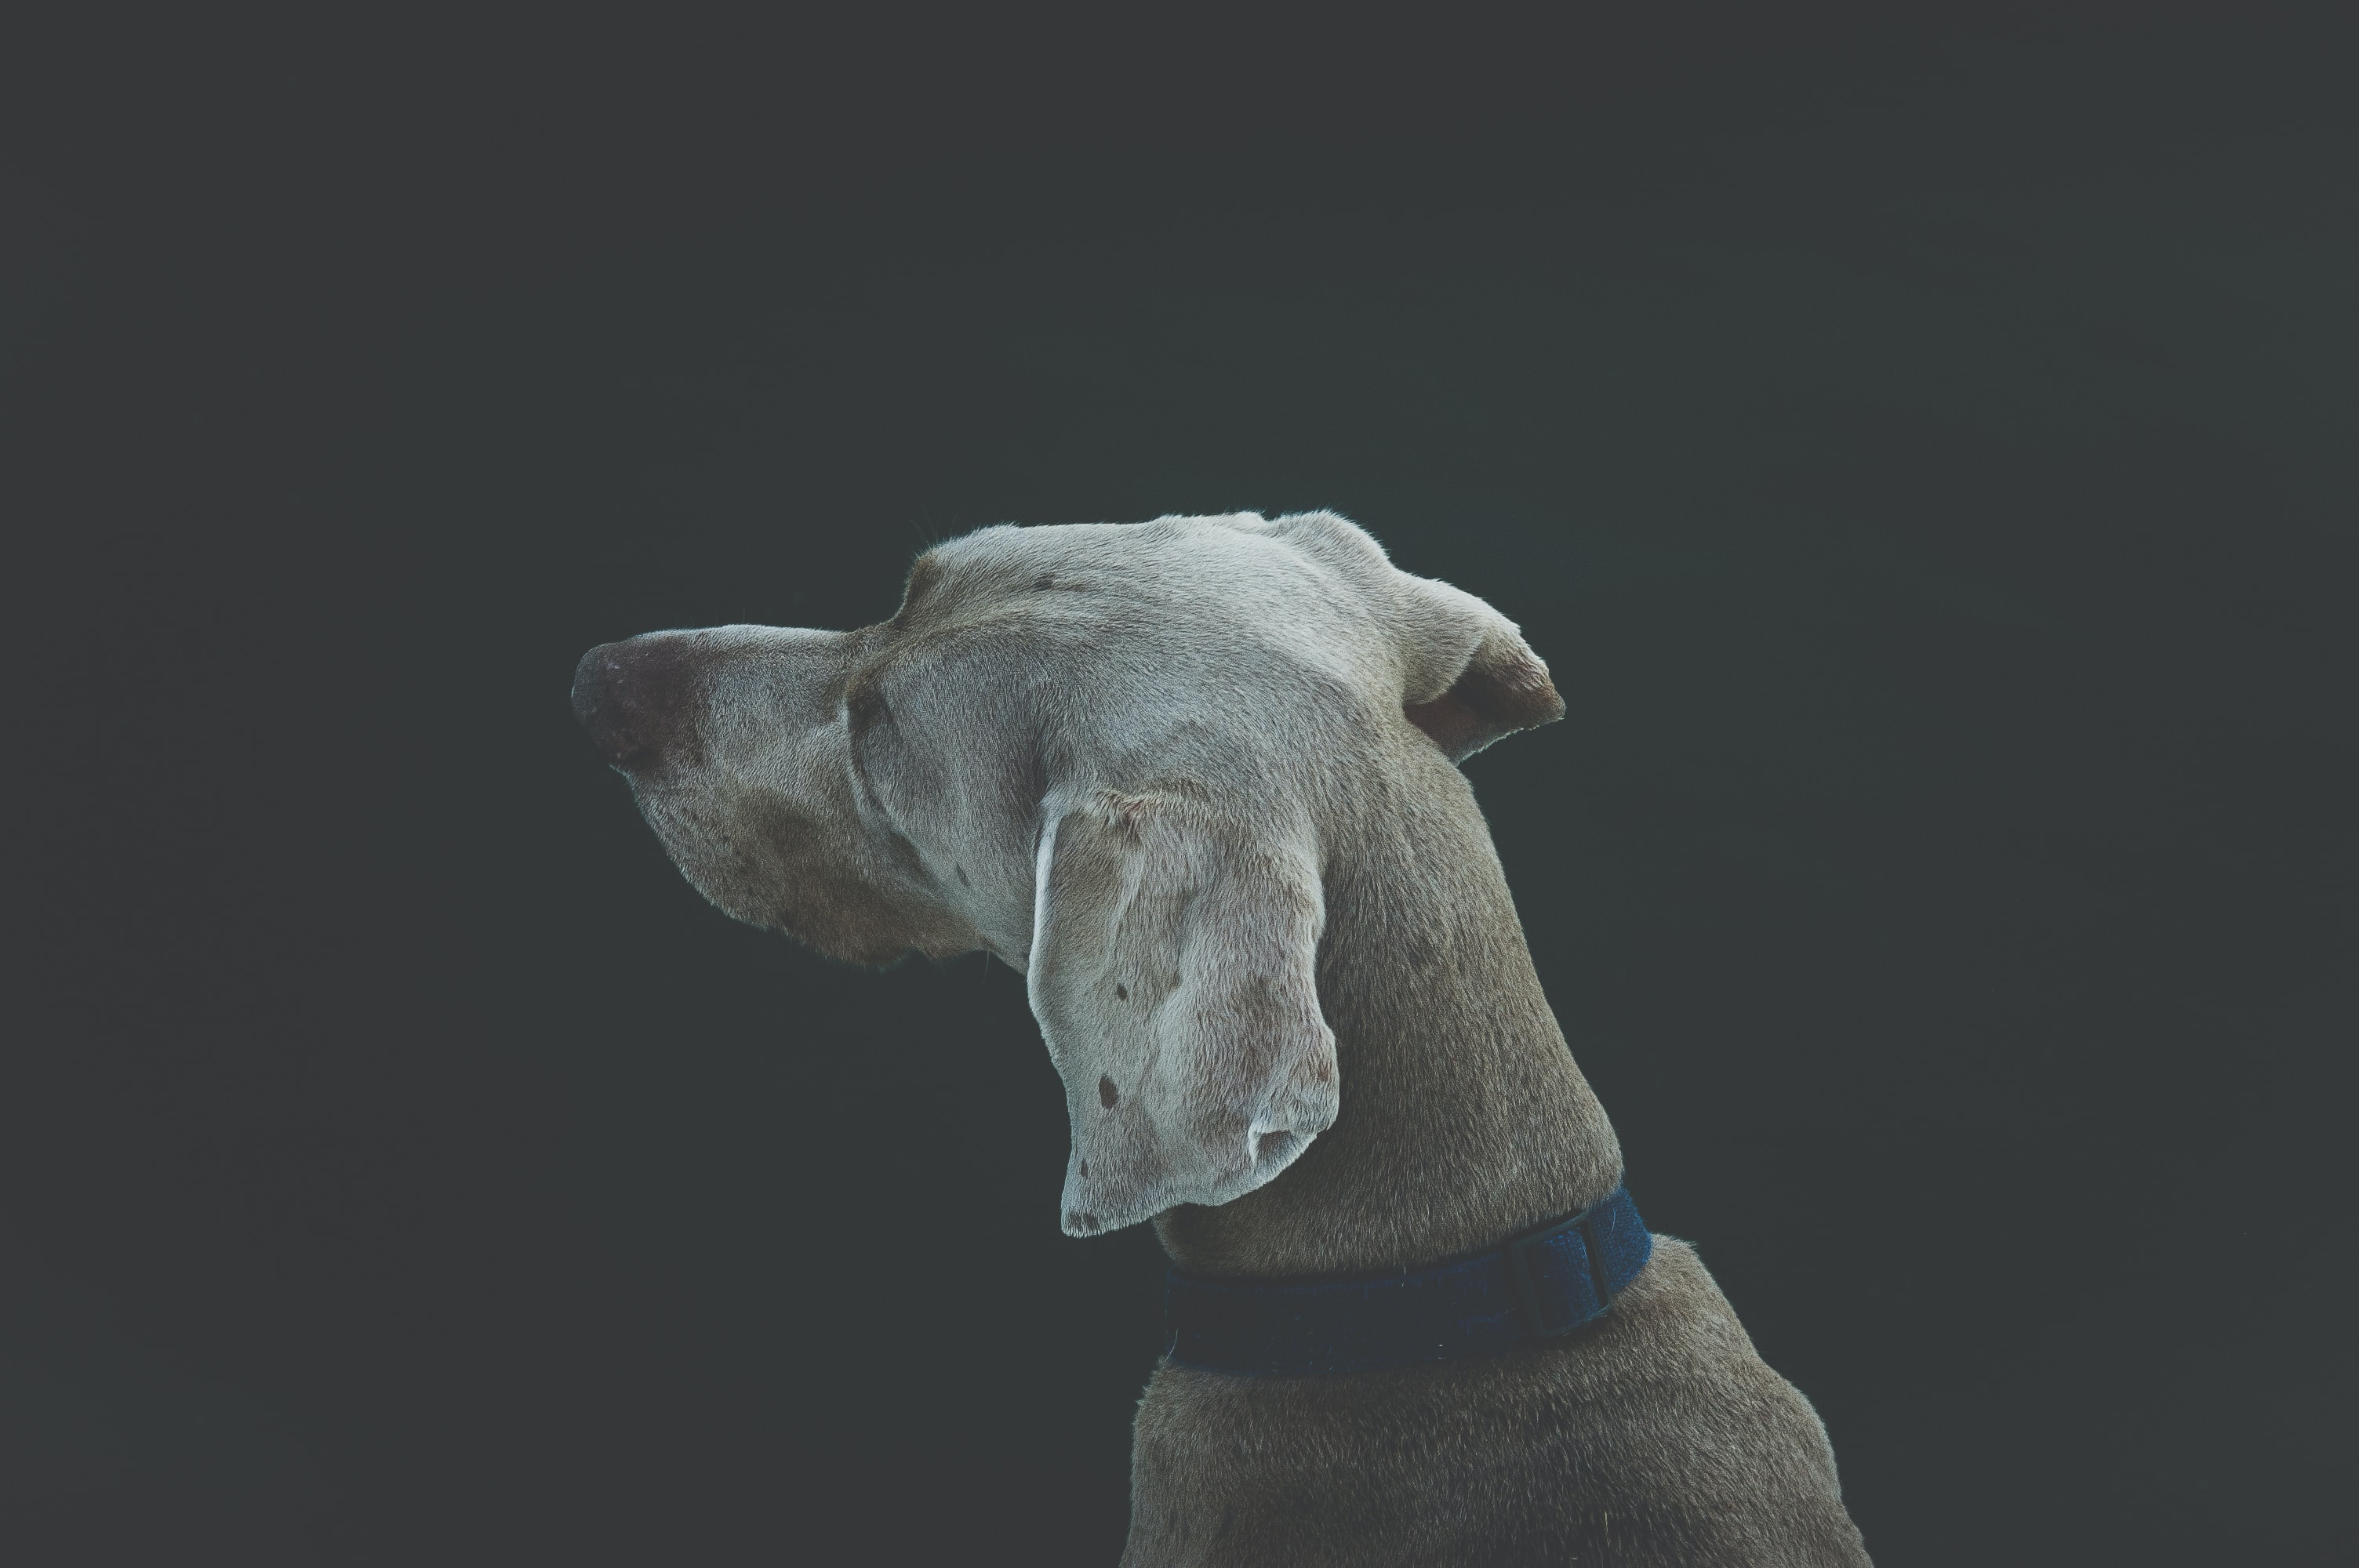 selective focus photography of short-coated white and tan dog